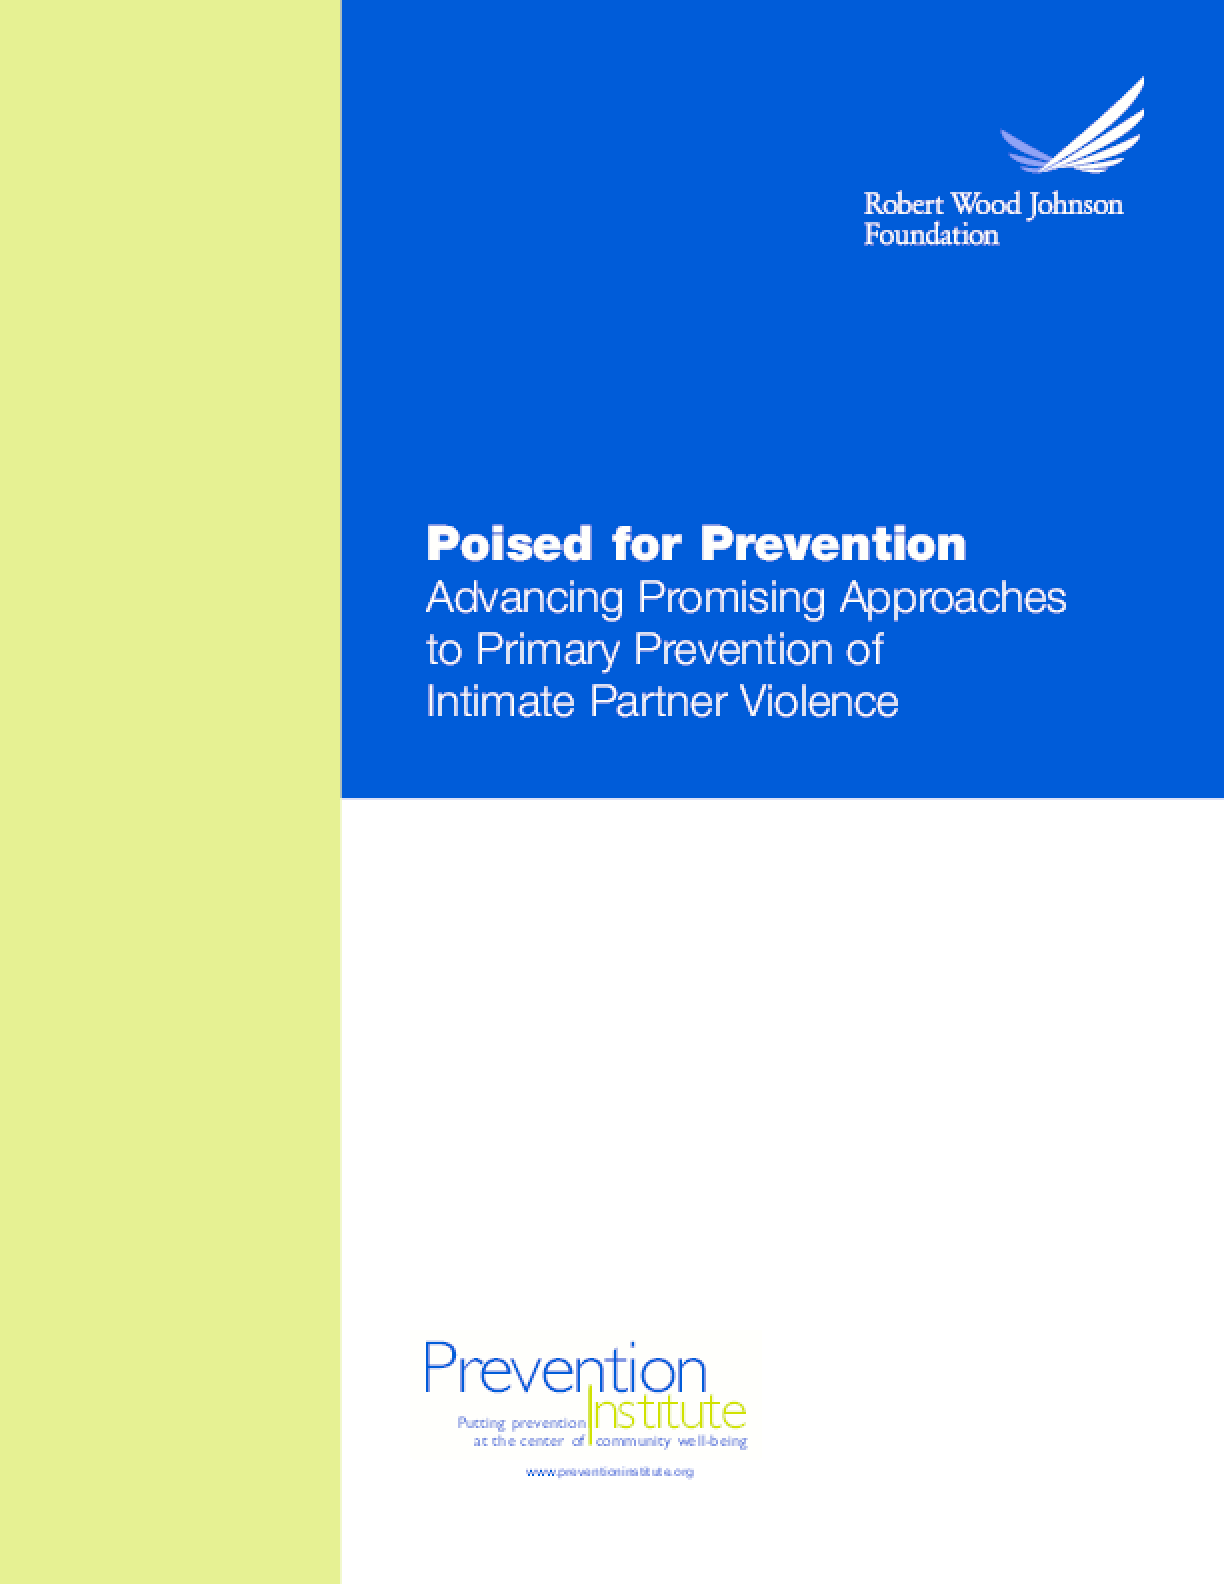 Poised for Prevention: Advancing Promising Approaches to Primary Prevention of Intimate Partner Violence